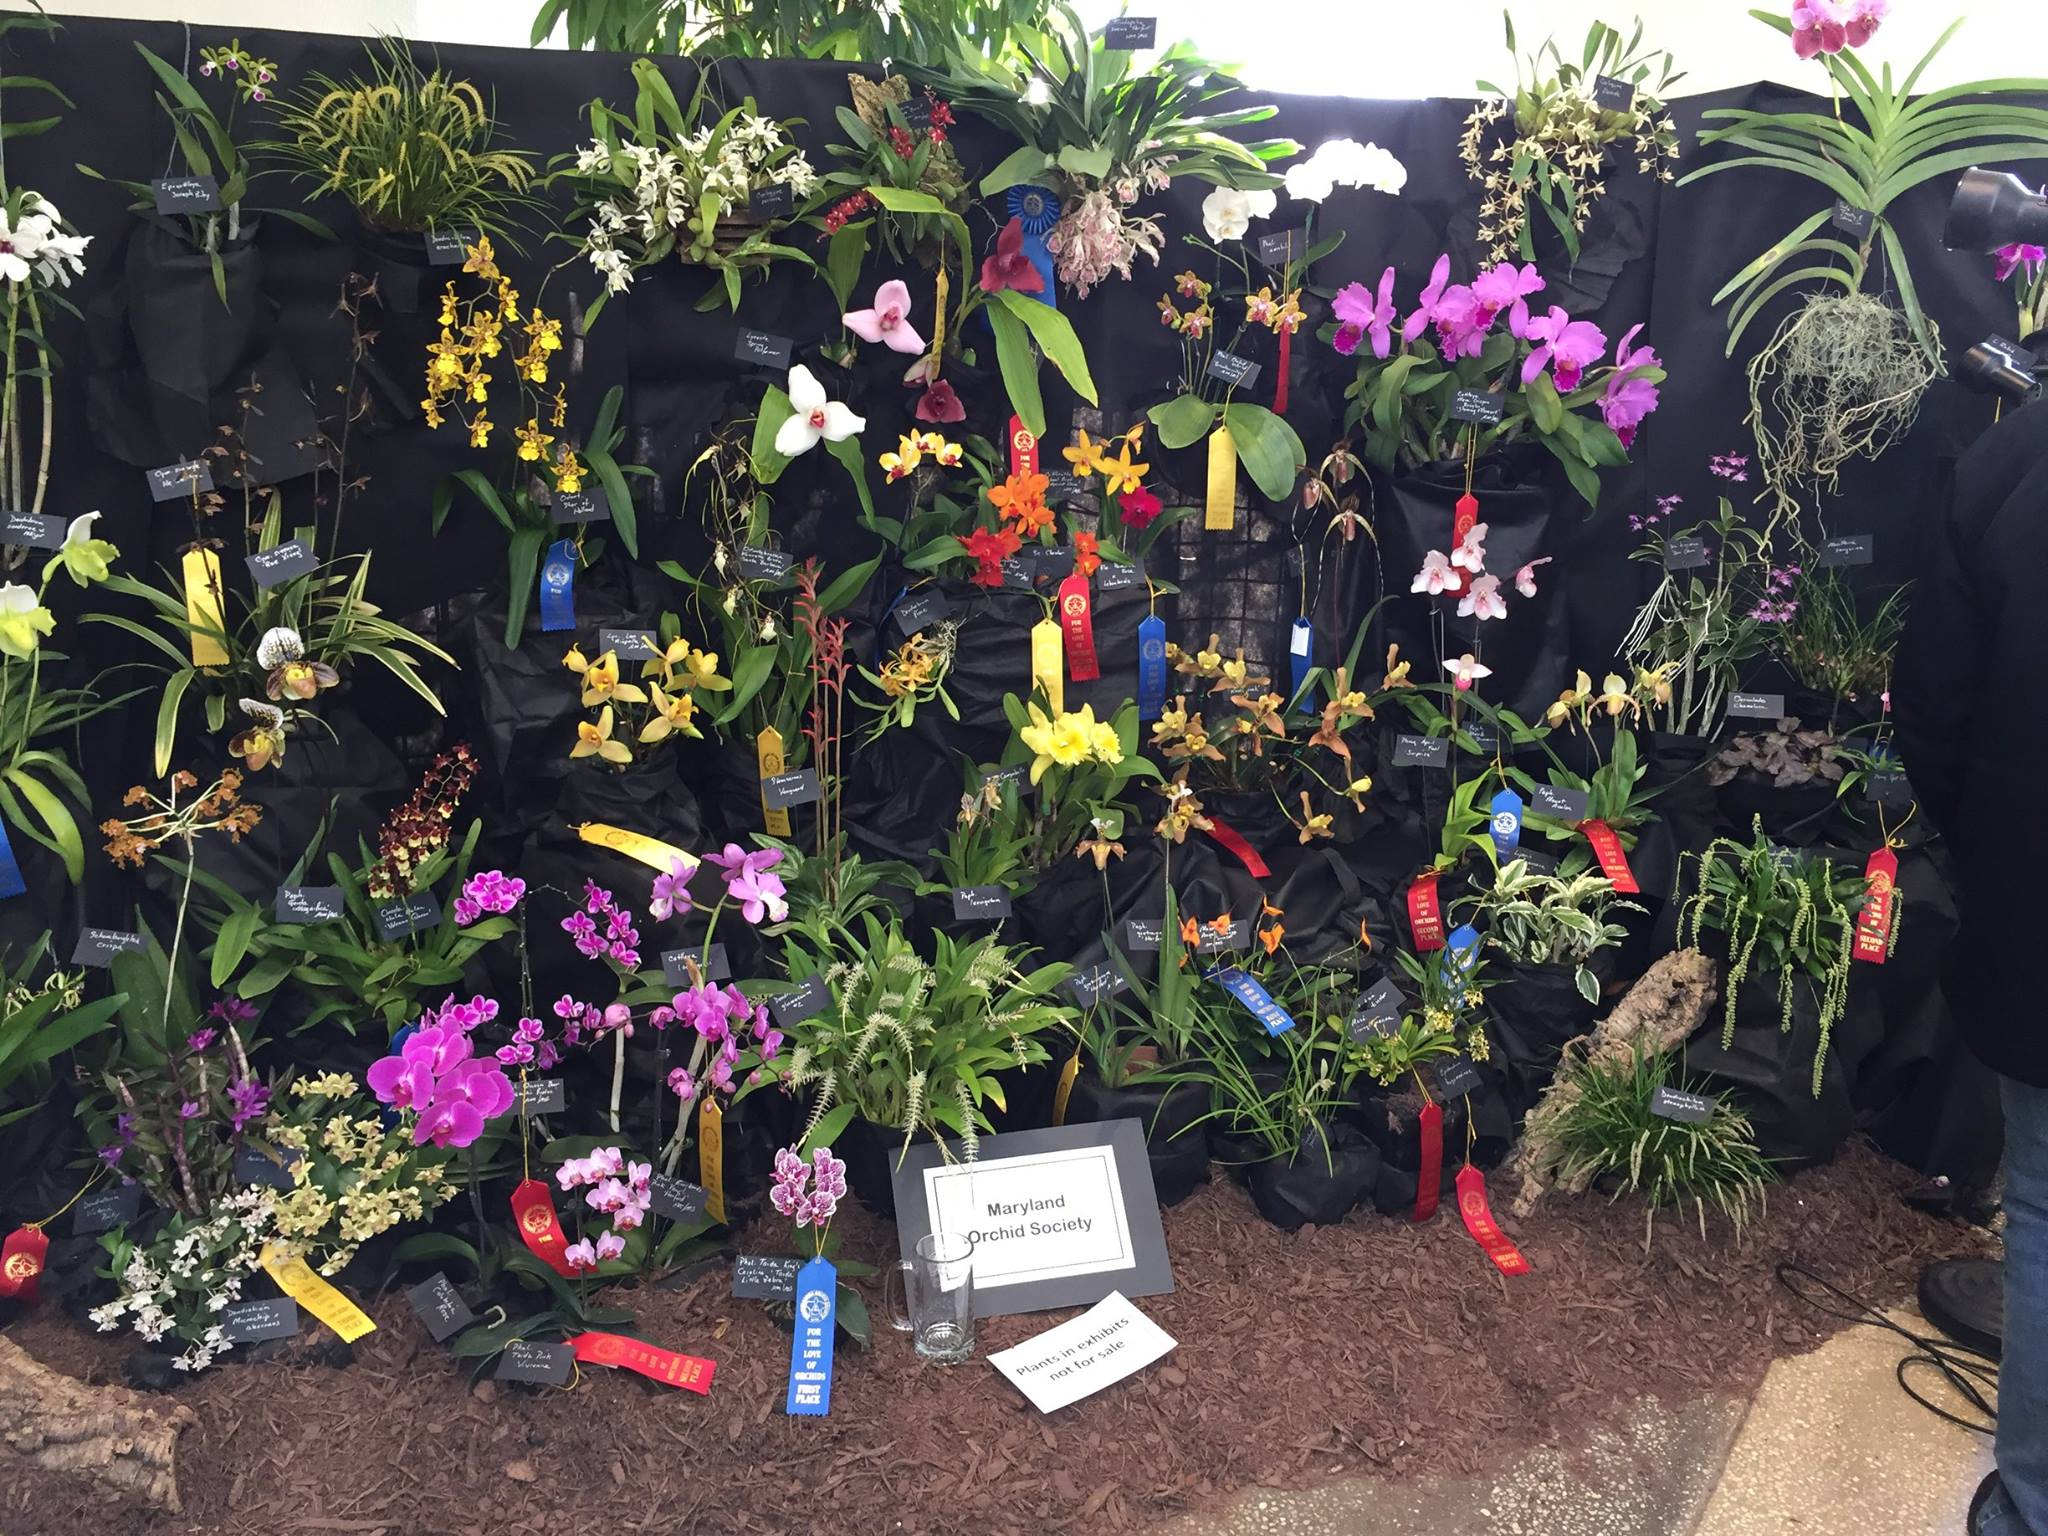 Maryland Orchid Society display at the Susquehanna Orchid Society Show 2017